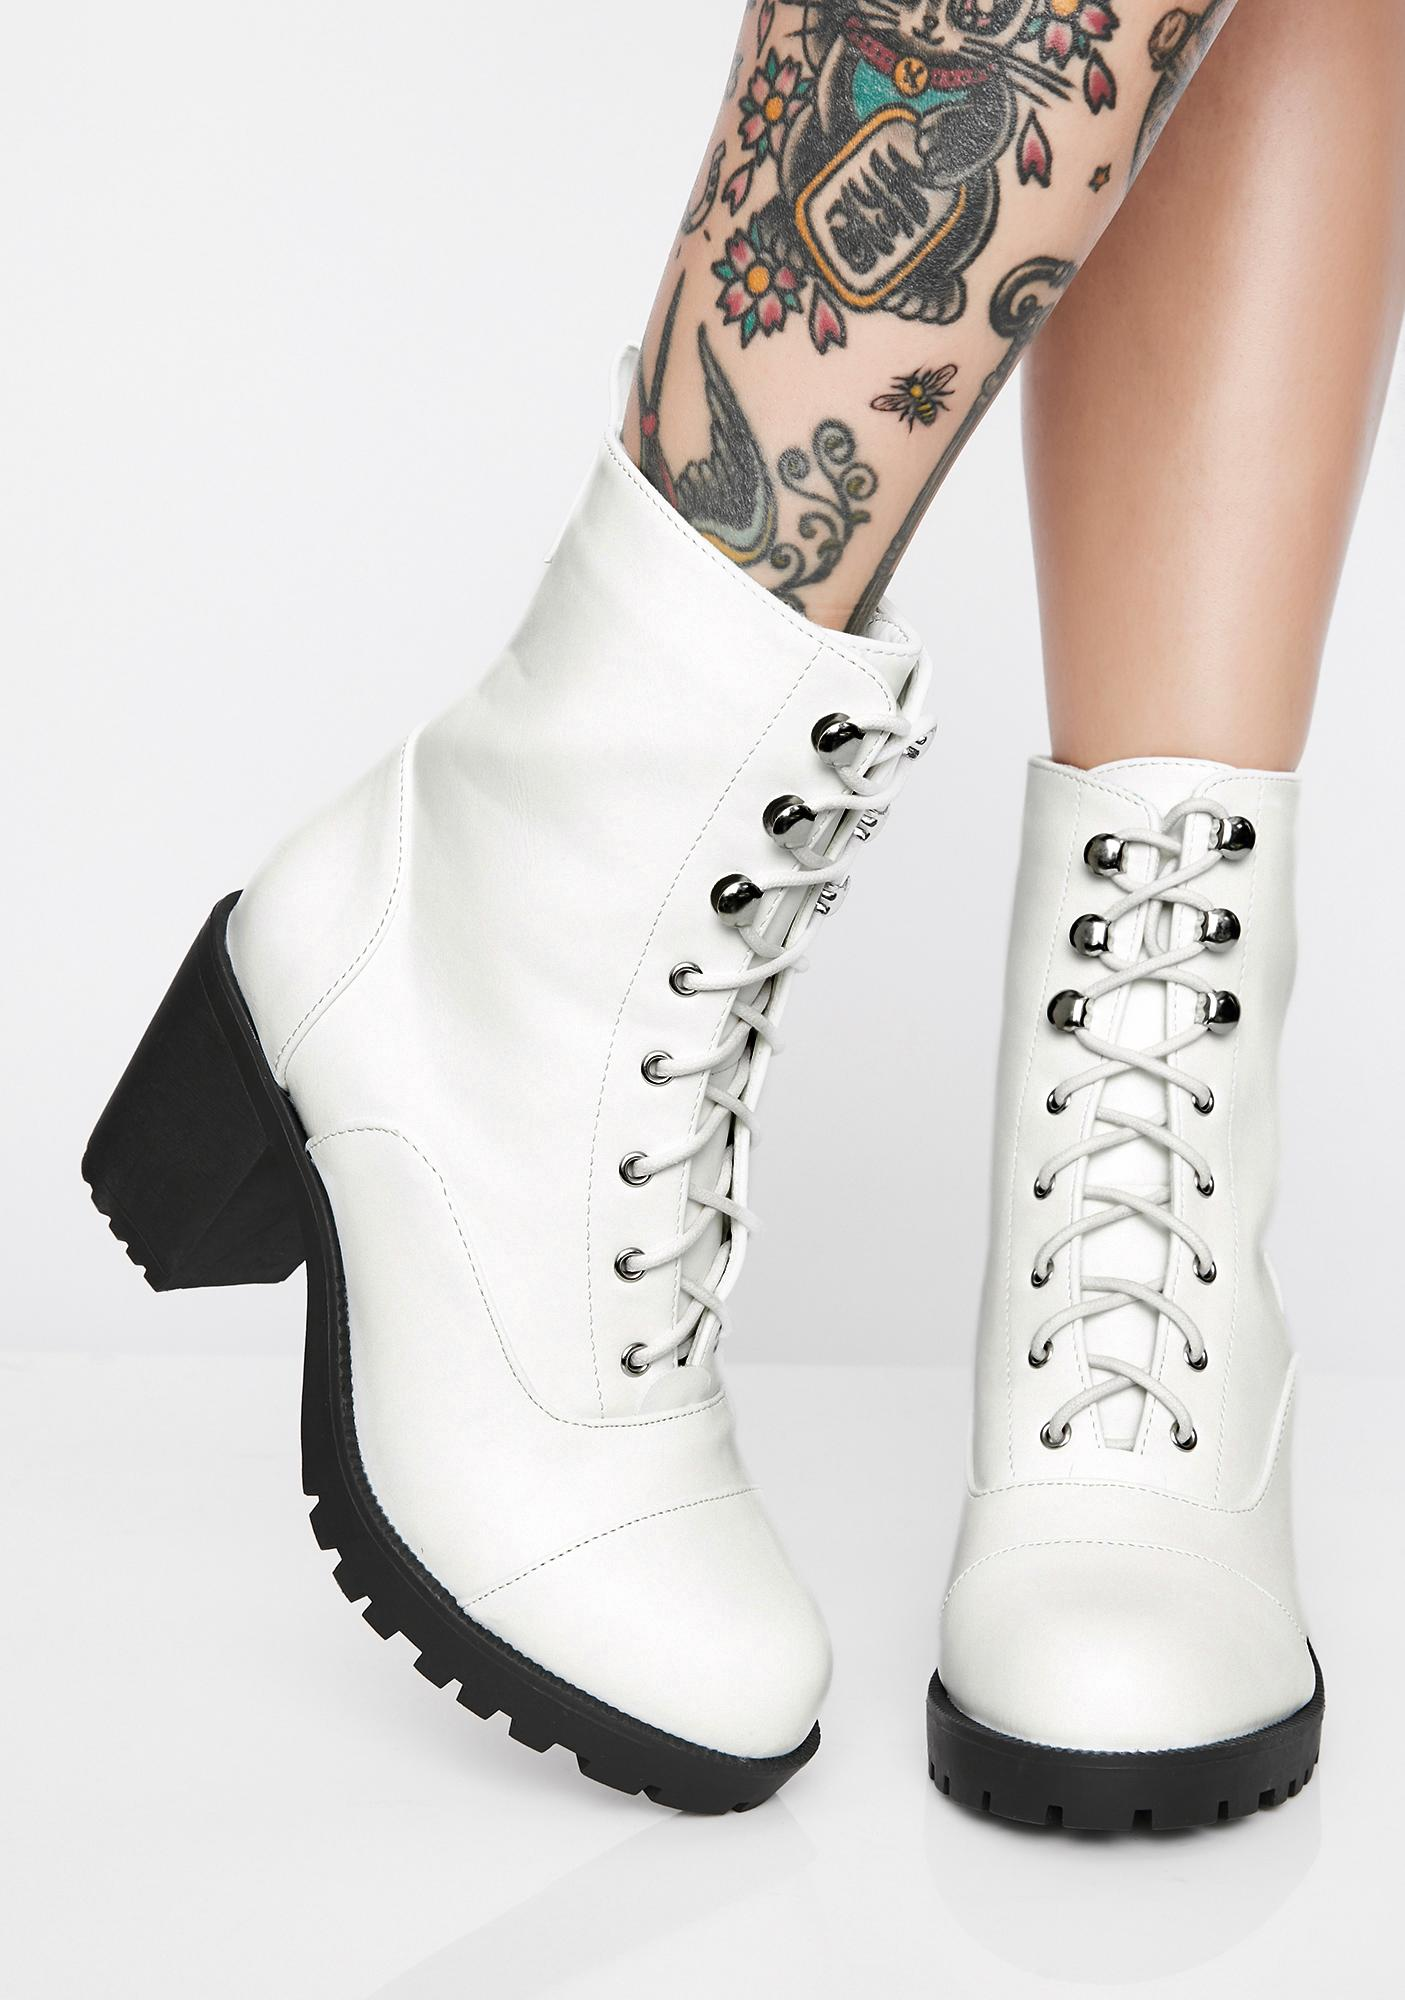 Purely In The Zone Lace-Up Booties